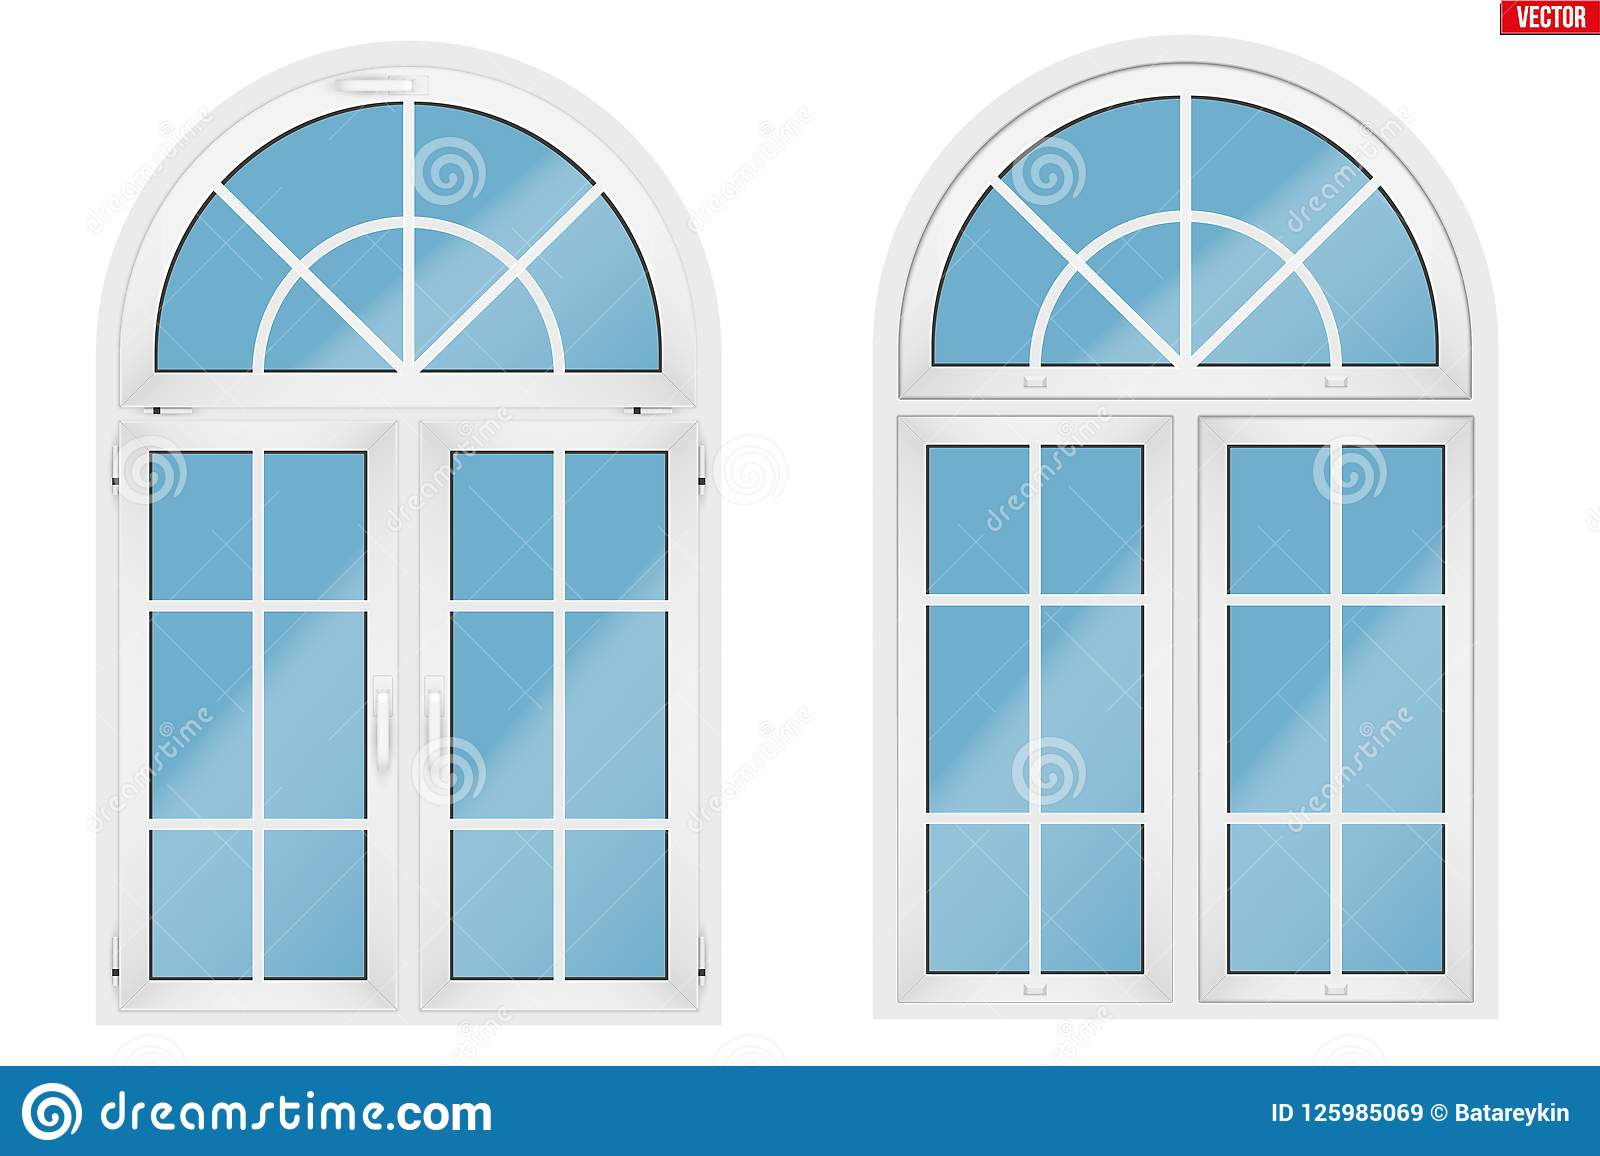 Ventanas Pvc Stock.Pvc Window With Arch Stock Vector Illustration Of Arch